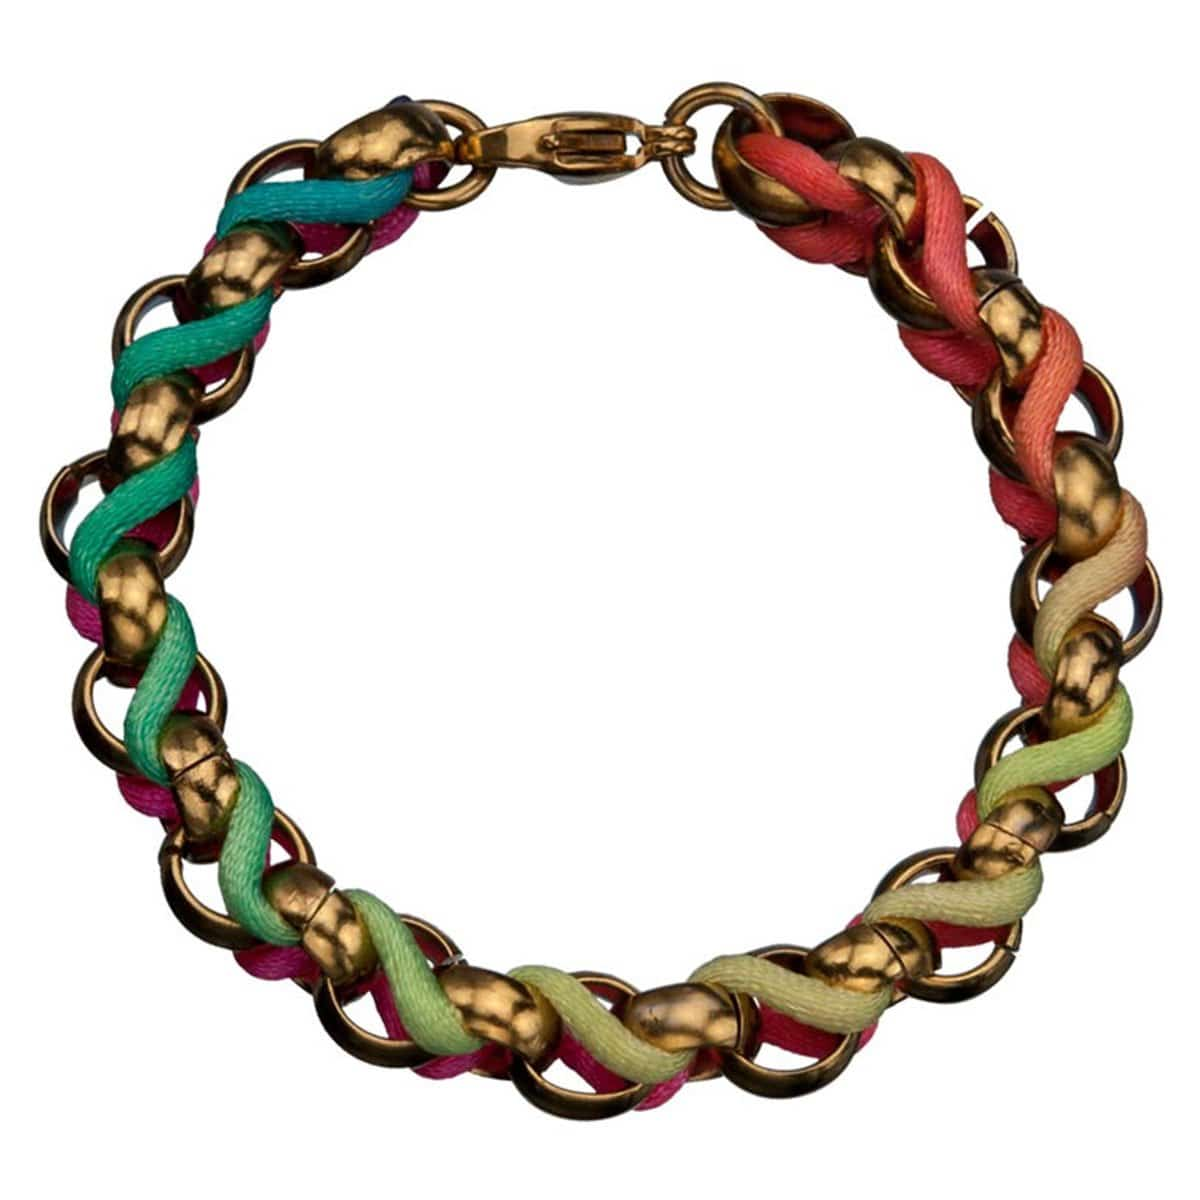 Gold Stainless Steel with Multicolor Woven Fabric Bracelet